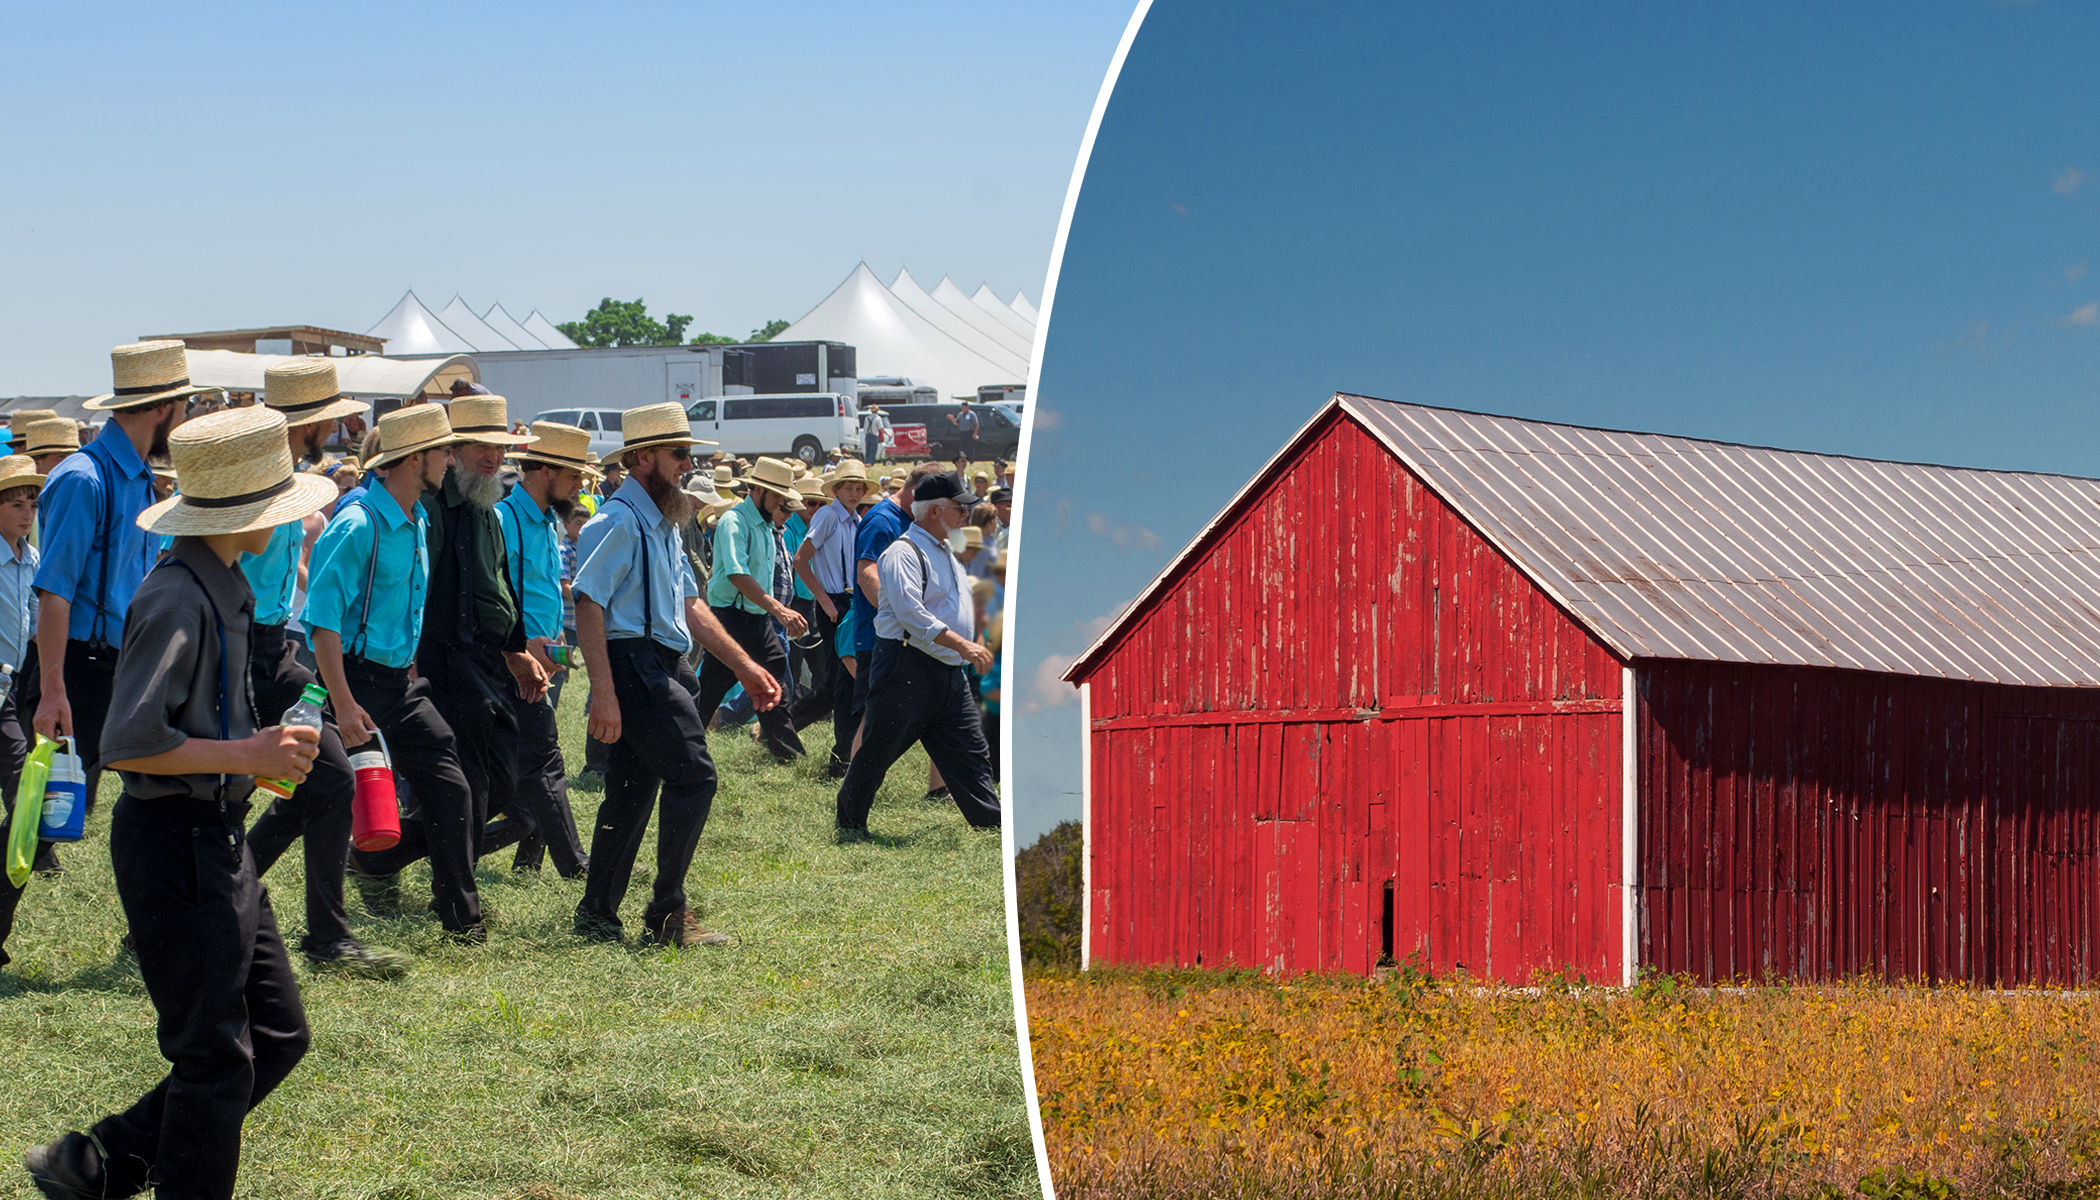 Watch in Awe As 250 Amish Men 'Help Move' by Lifting a Barn With Their Bare Hands